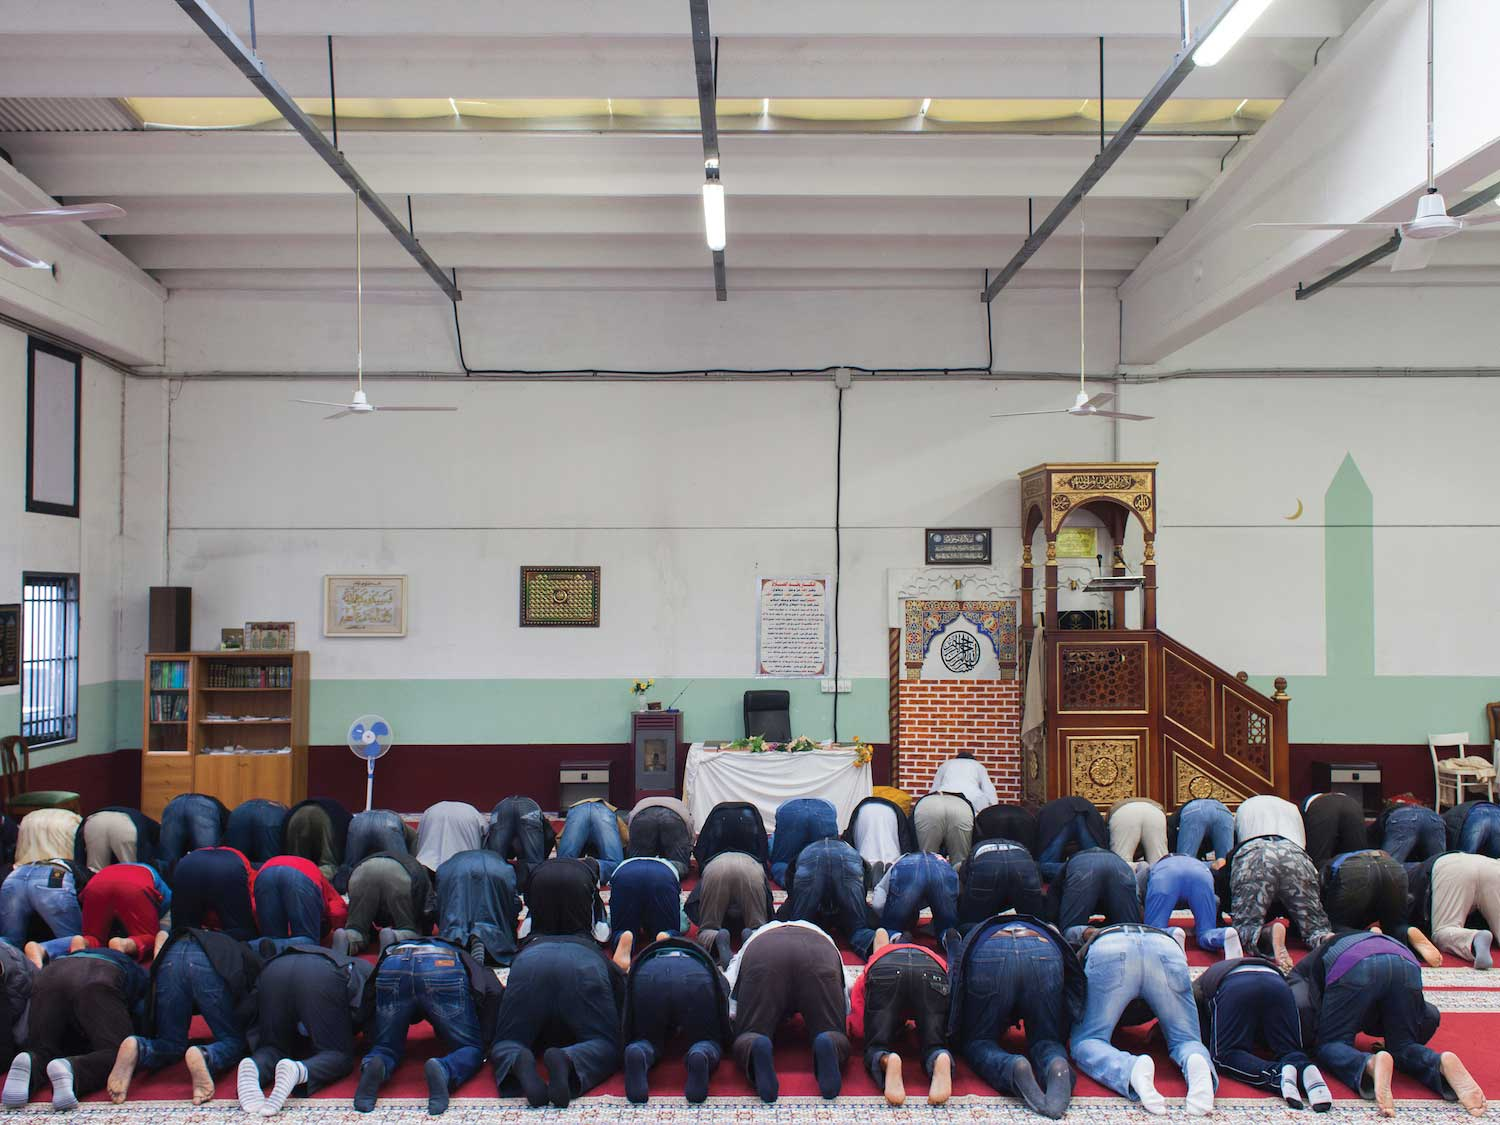 A warehouse used as makeshift place of worship for Muslims in the Province of Venice, Italy.